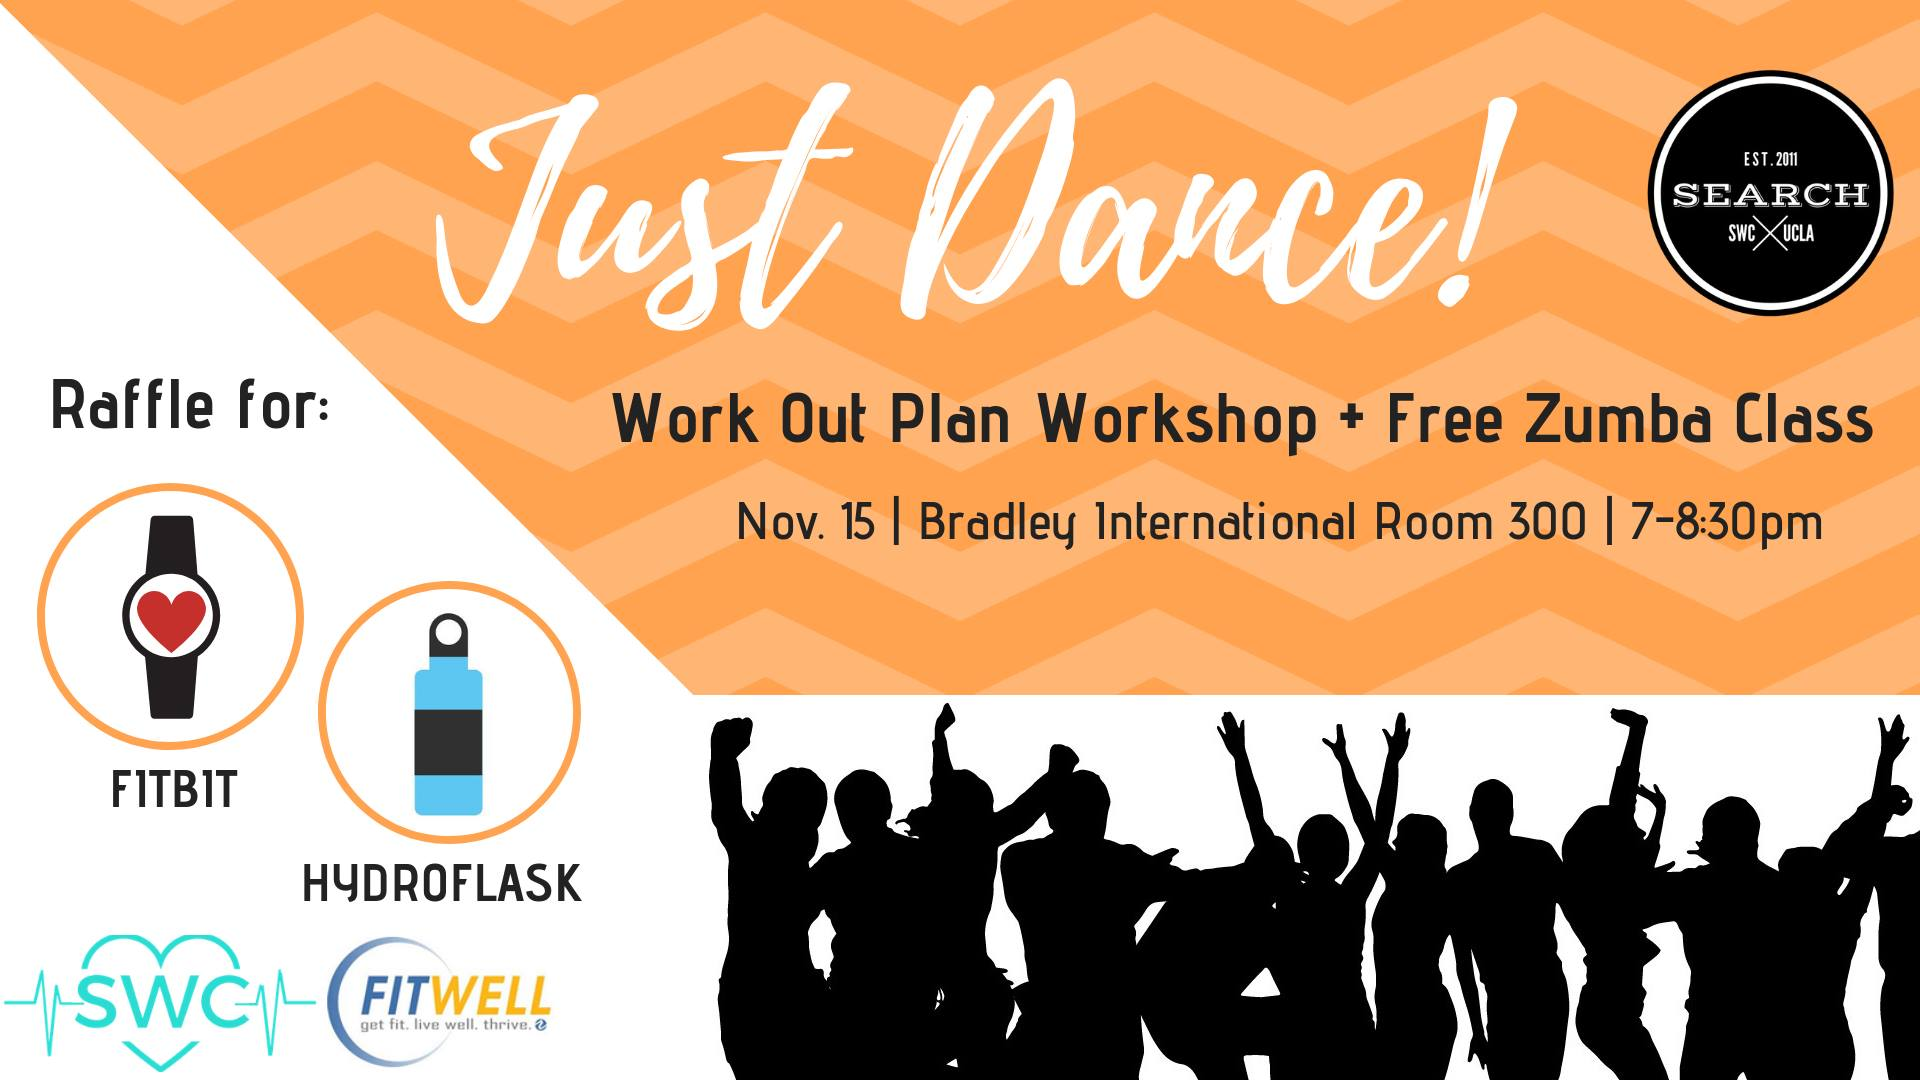 Just Dance! Work Out Plan Workshop + Free Zumba Class @ Bradley International Room 300